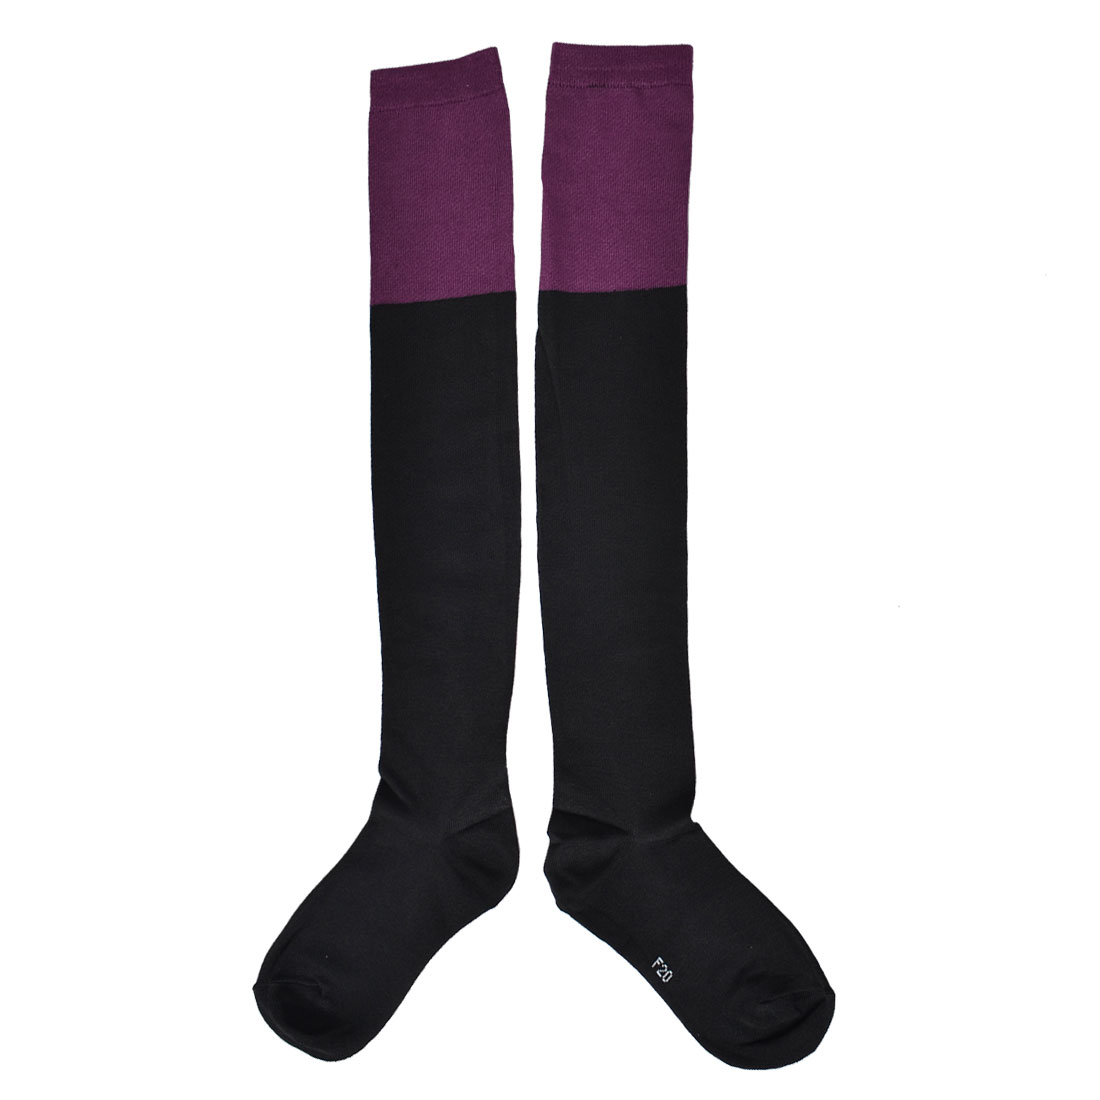 Lady Black Purple Pure Over Knee High Socks Stockings